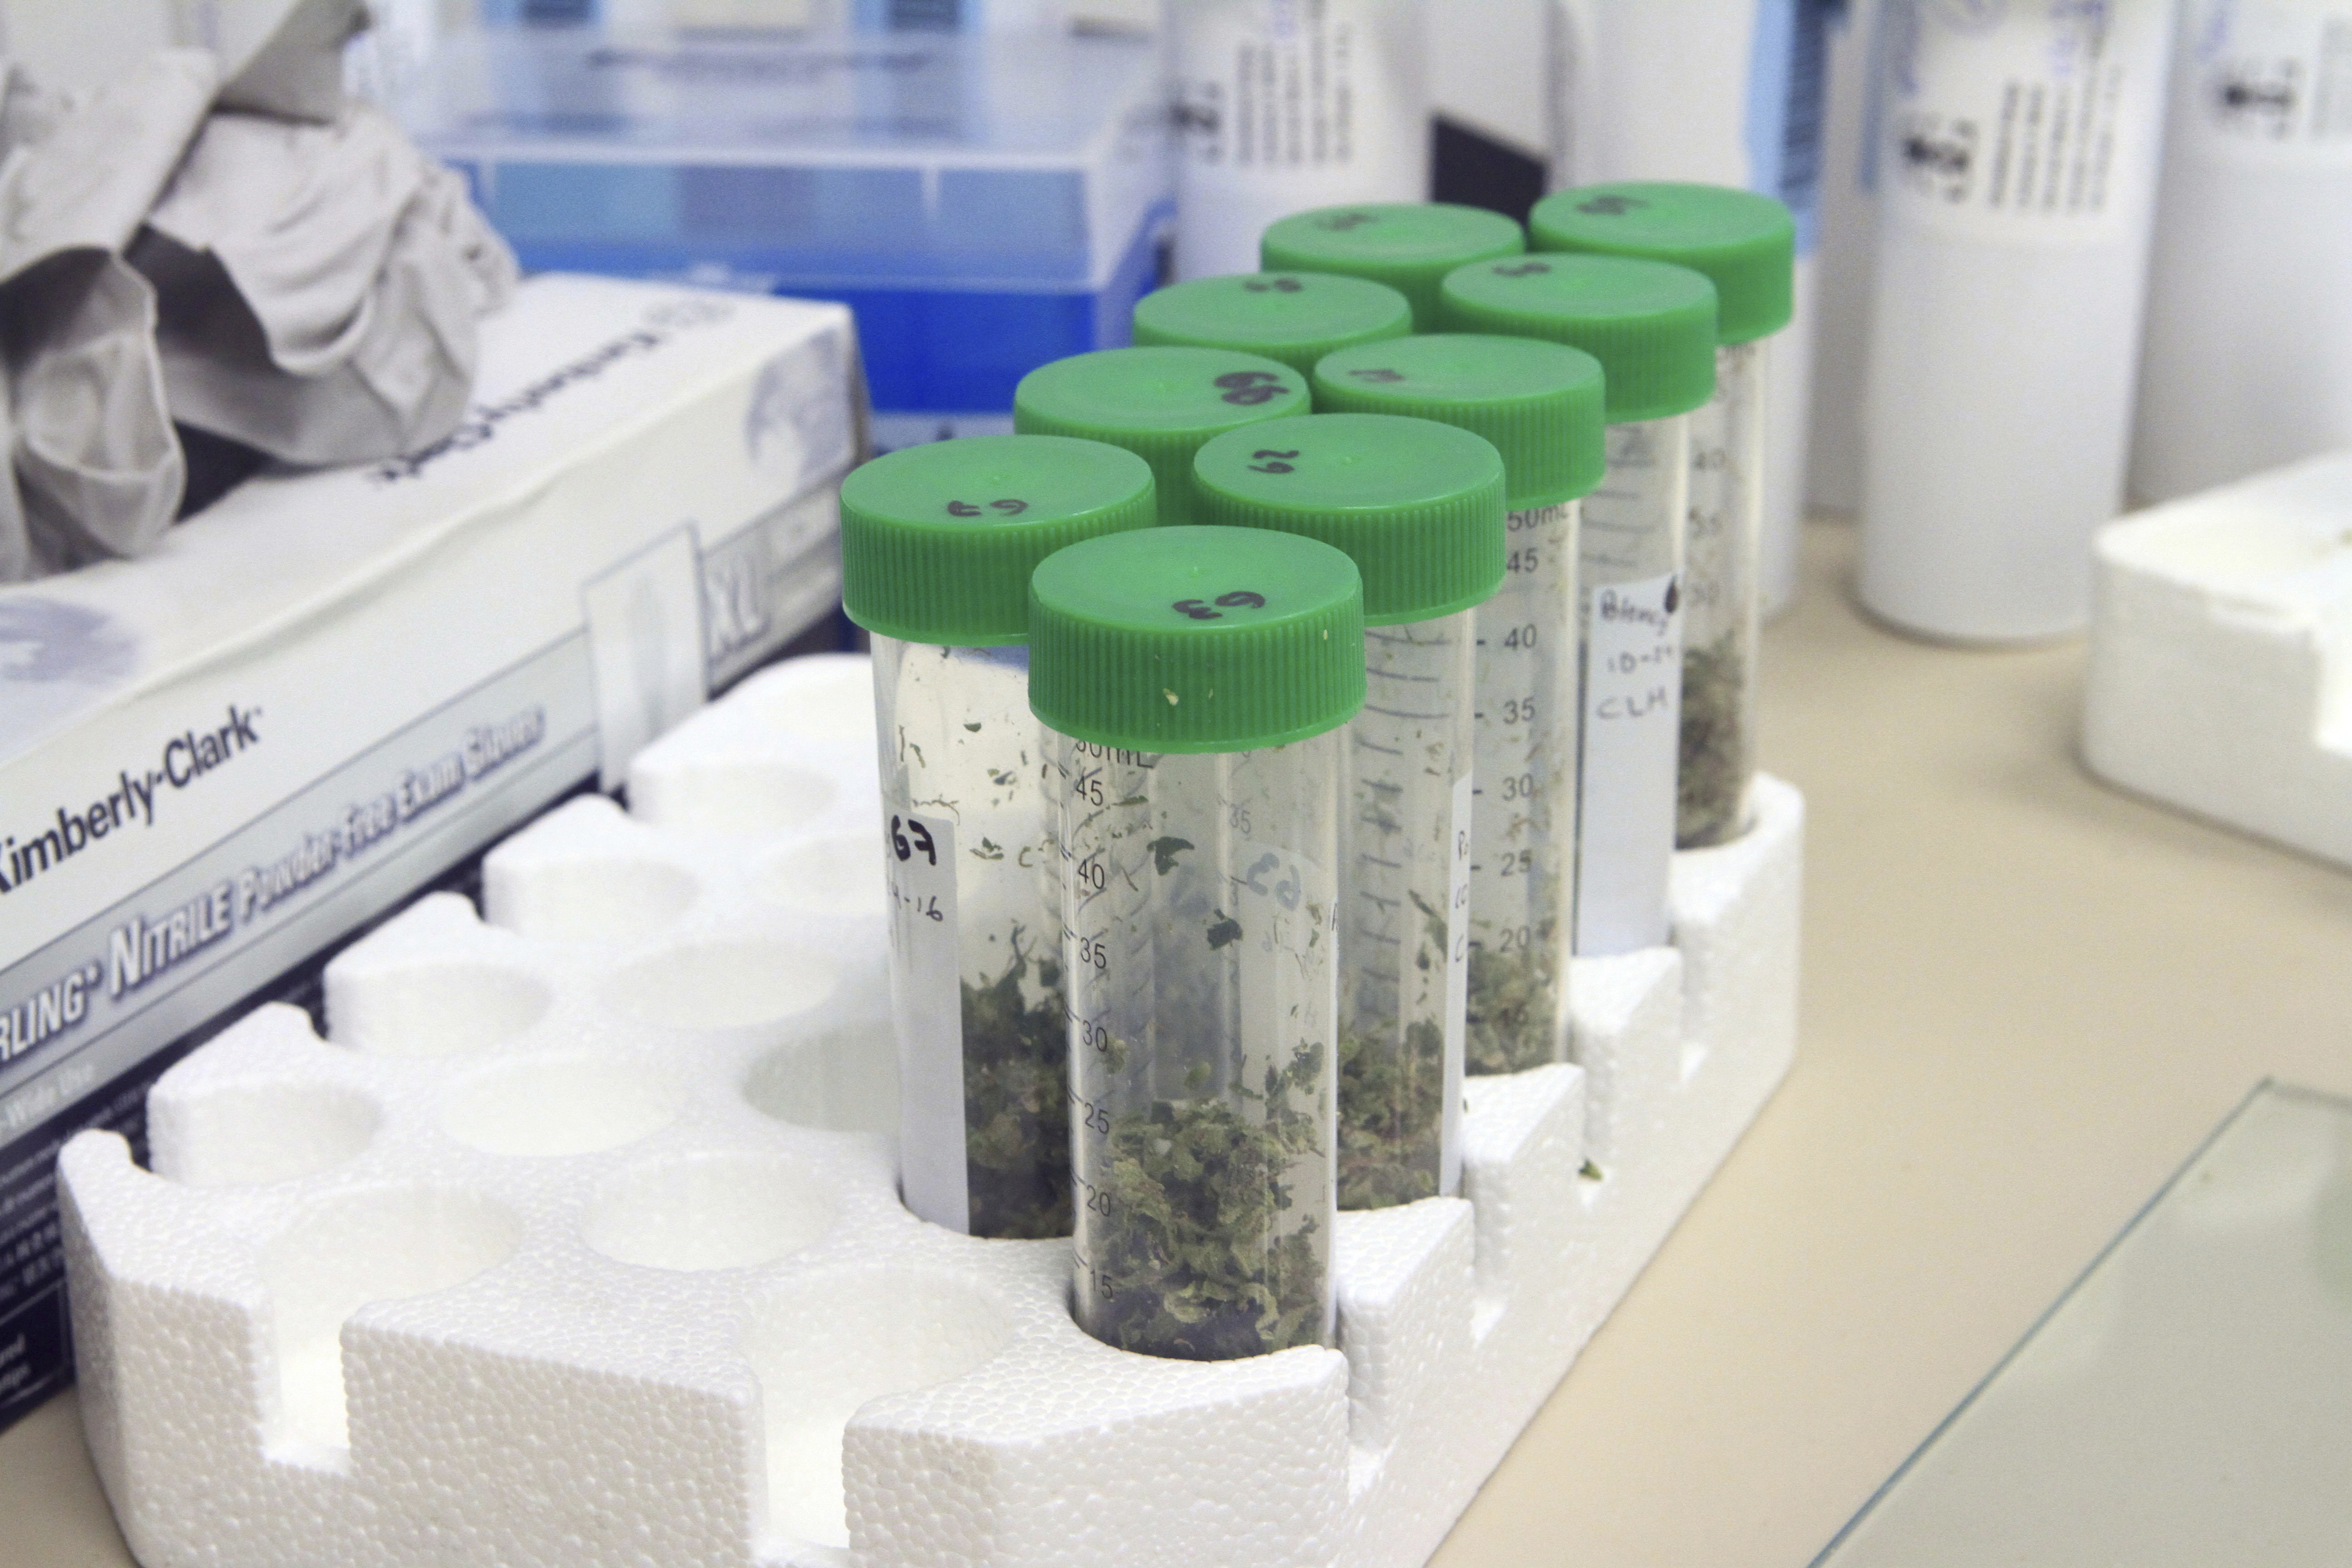 ohio rules for medical pot growers bring access questions